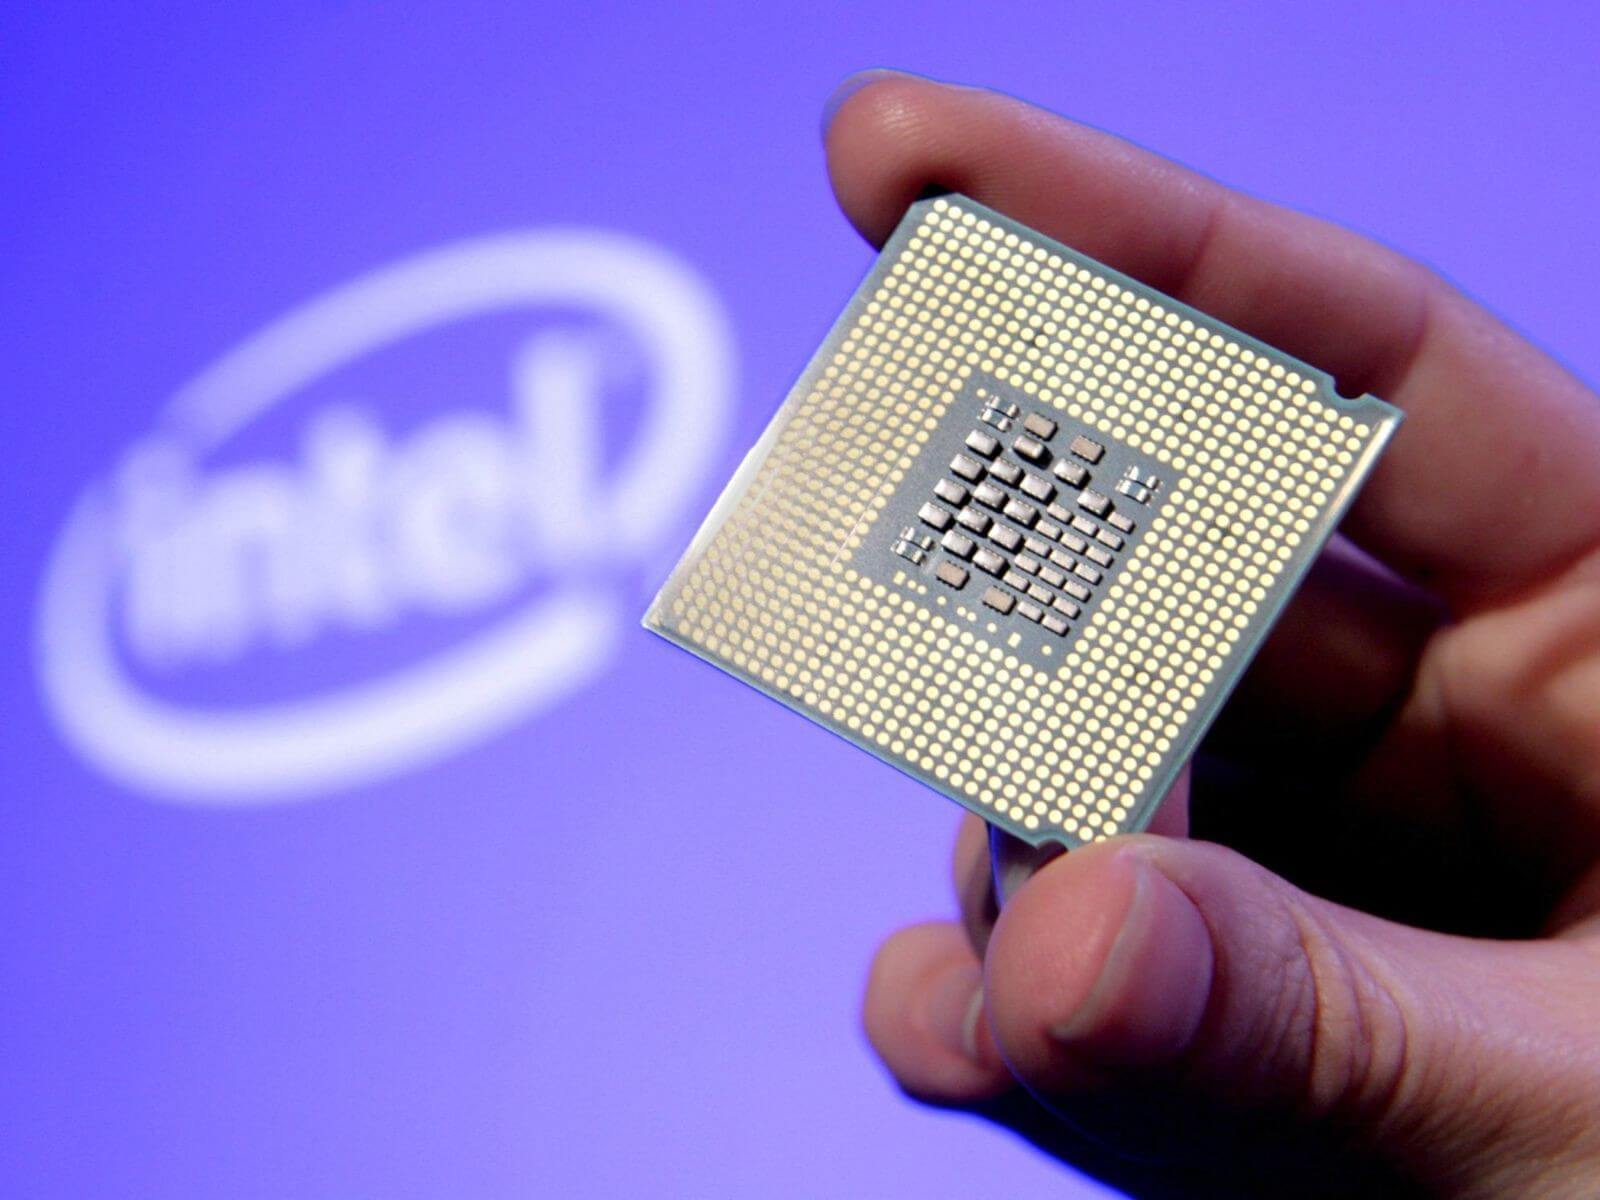 How serious are the Intel / Meltdown / Spectre flaws?